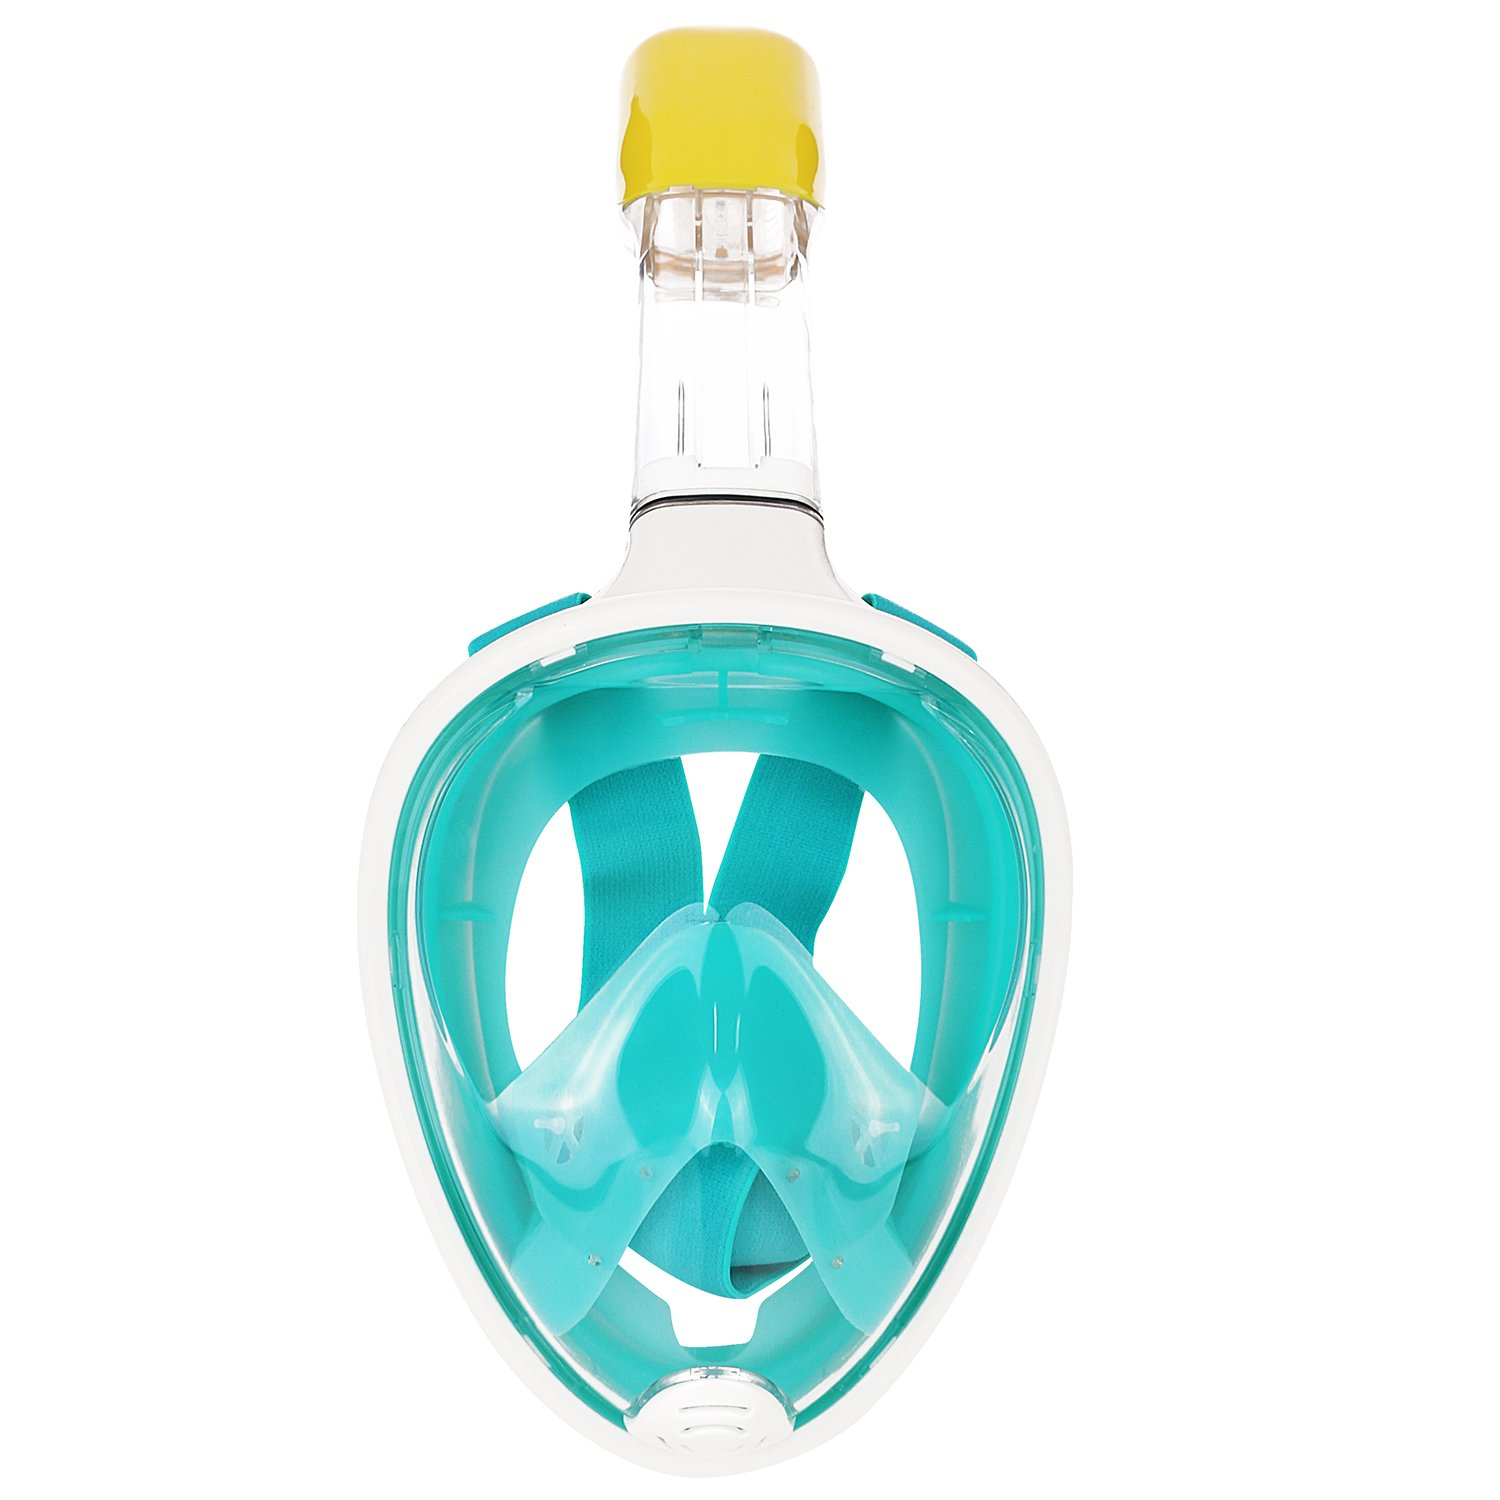 Heart Horse Snorkeling mask Seaview 180°GoPro Compatible Snorkel Mask- Panoramic Full Face Breathing Design with Anti-fog and Anti-leak Technology, See More With Larger Viewing Area Than Traditional Masks(Green, L/XL)